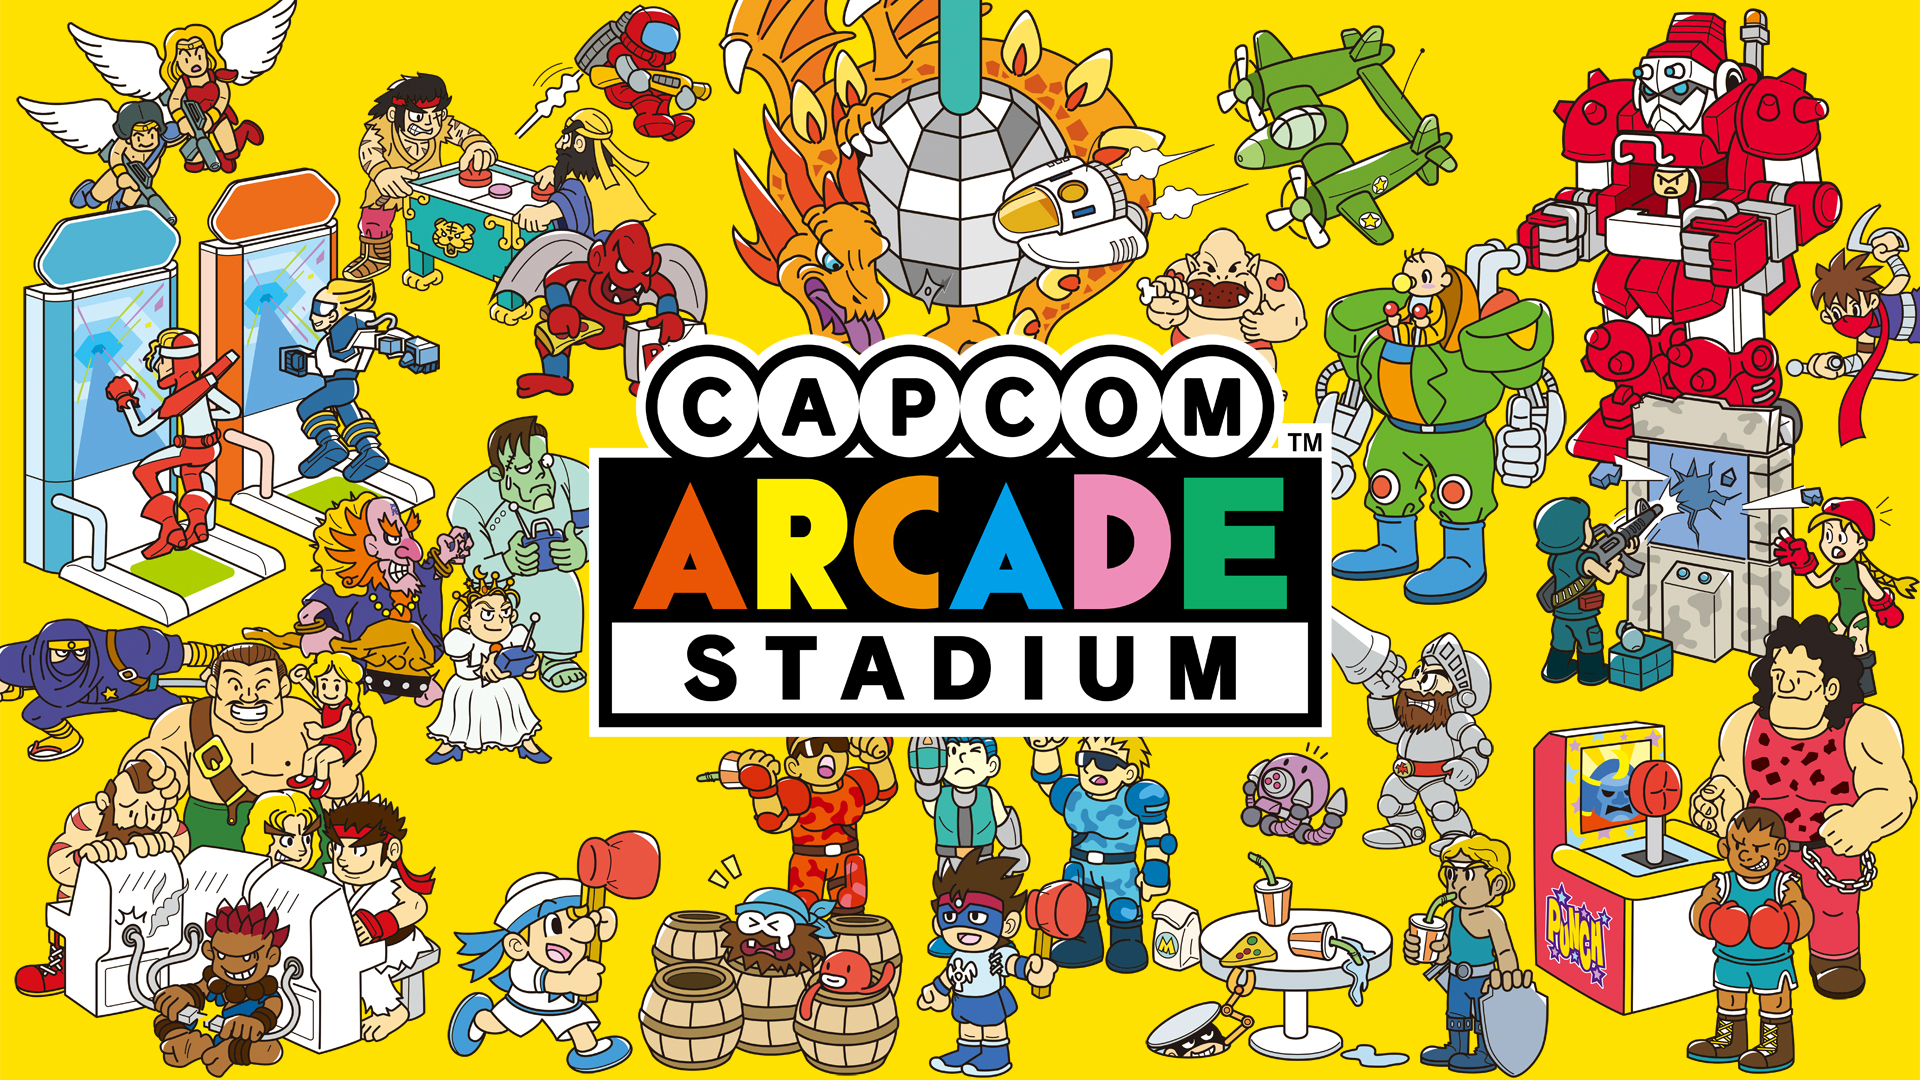 ACT Capcom Arcade Stadium